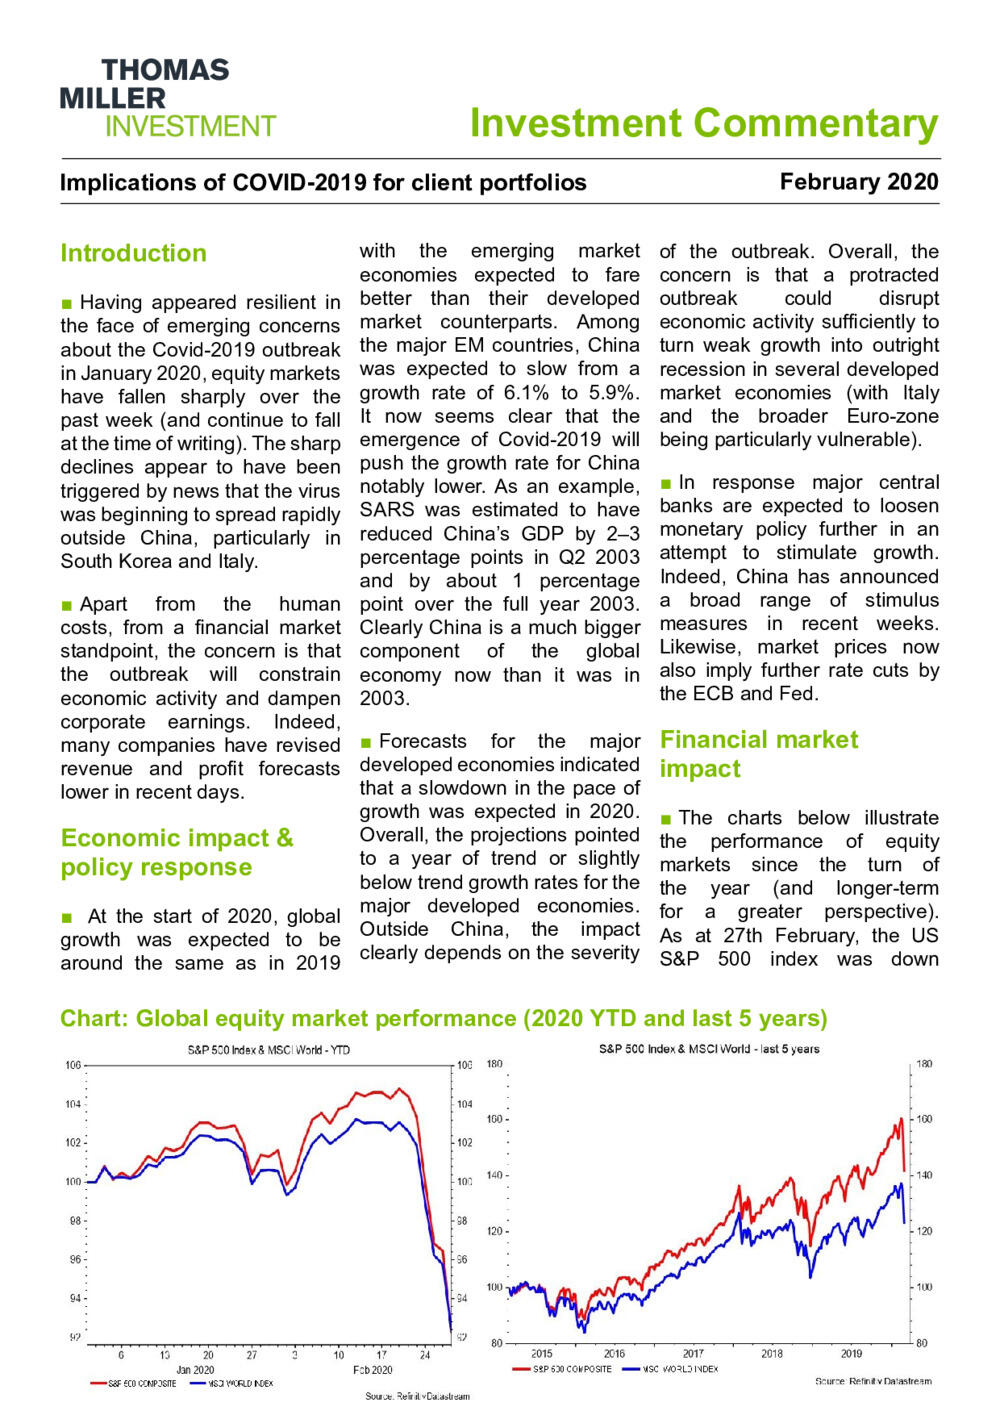 Investment Commentary - COVID-19 Impact - Feb 2020